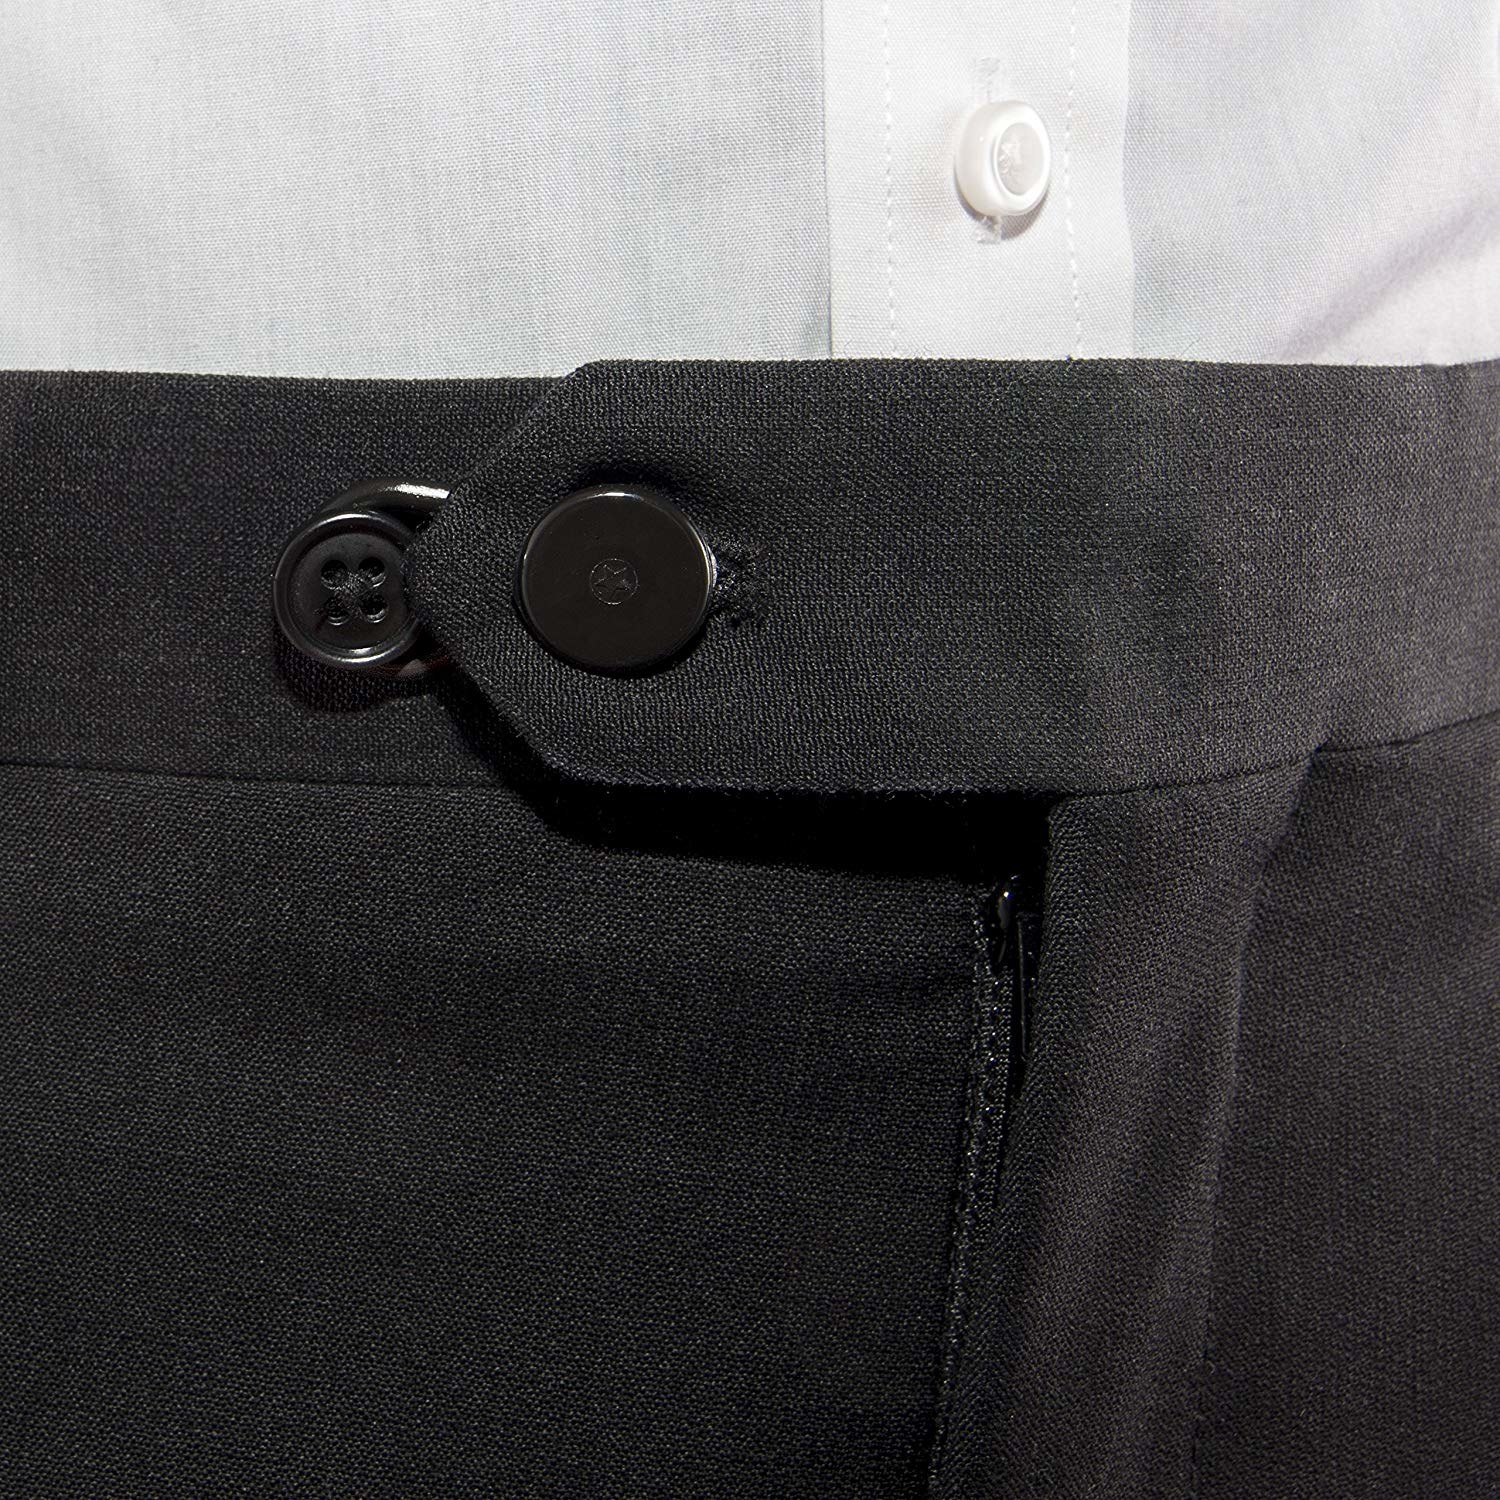 The button extender in black